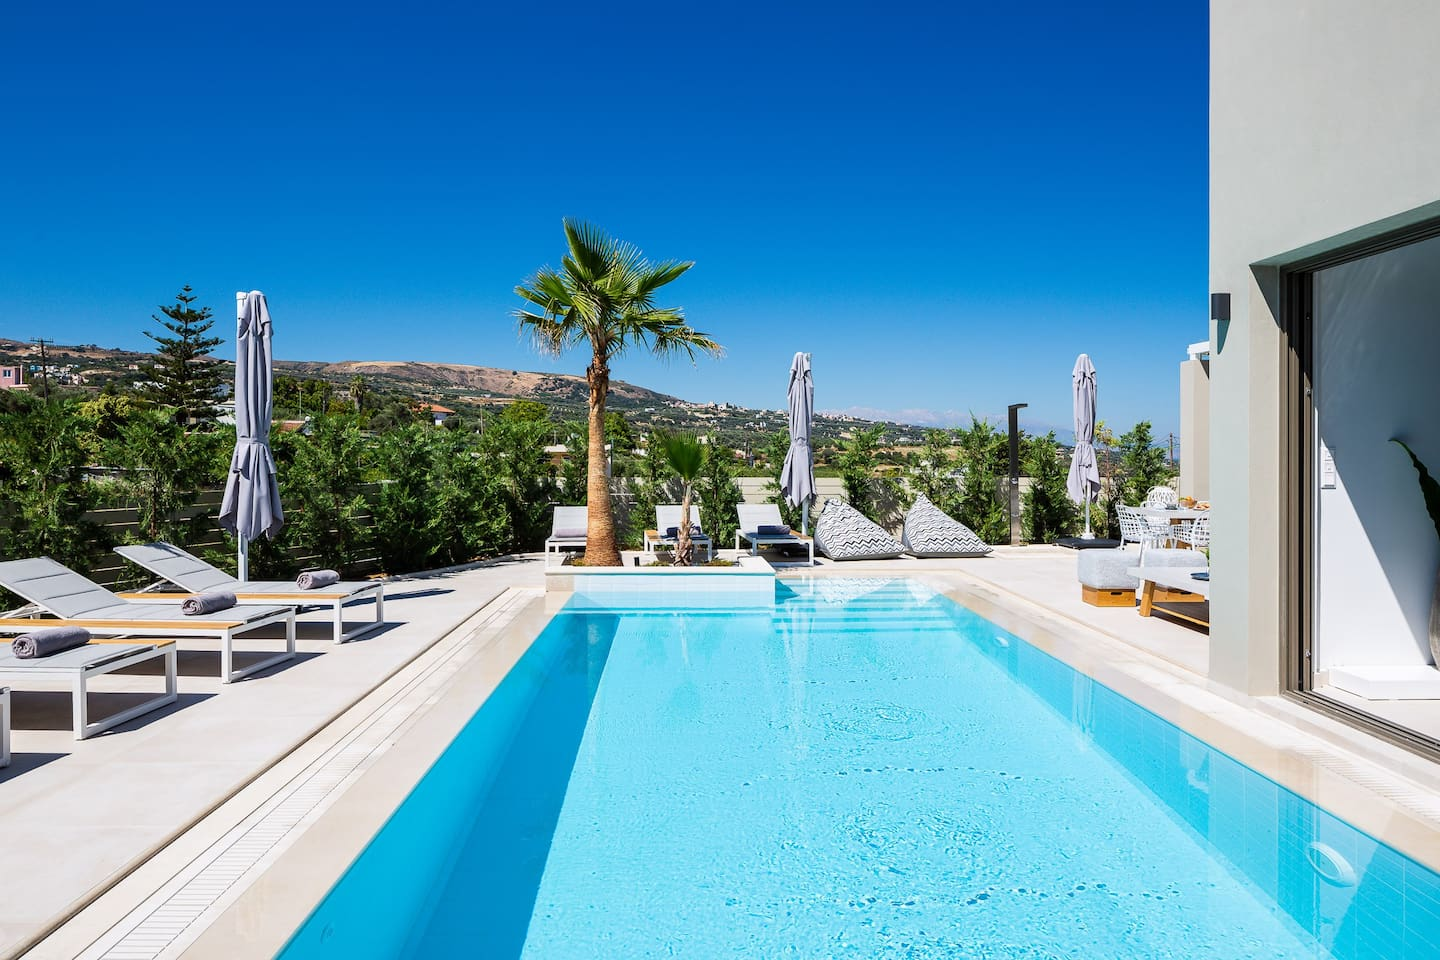 Nestled in the picturesque village of Agios Dimitrios, Villa Vasilios will be the perfect haven for an indulgent recline.